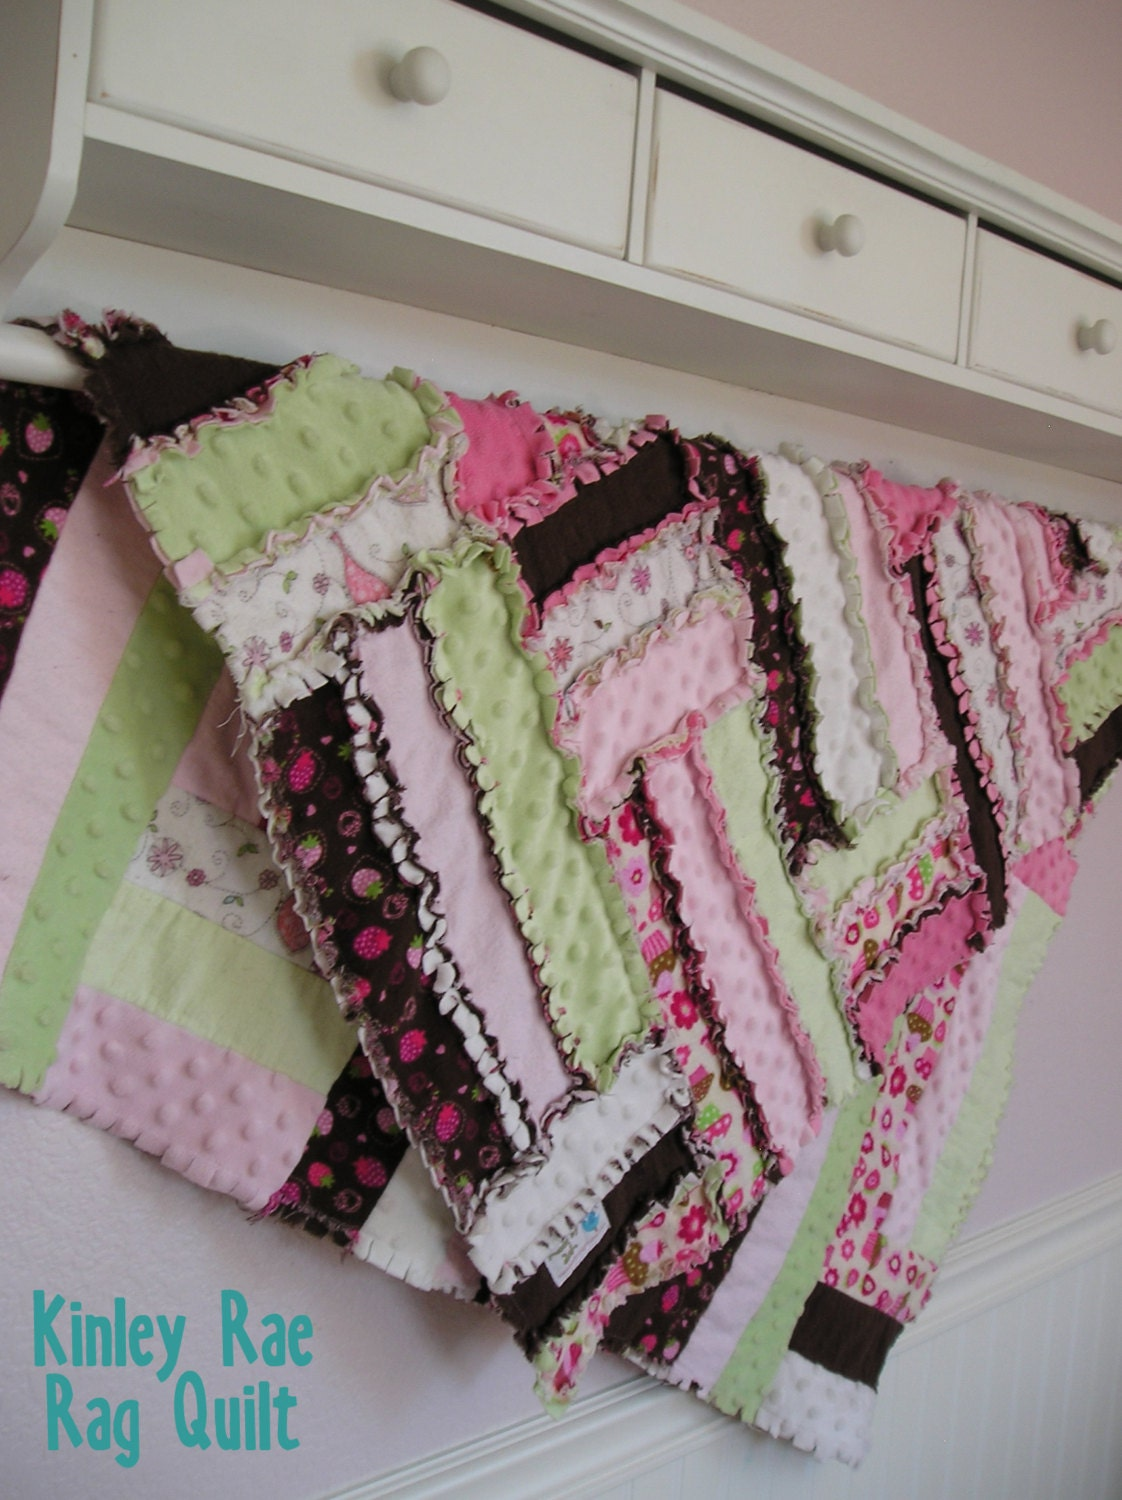 The Kinley Rae Rag Quilt PATTERN